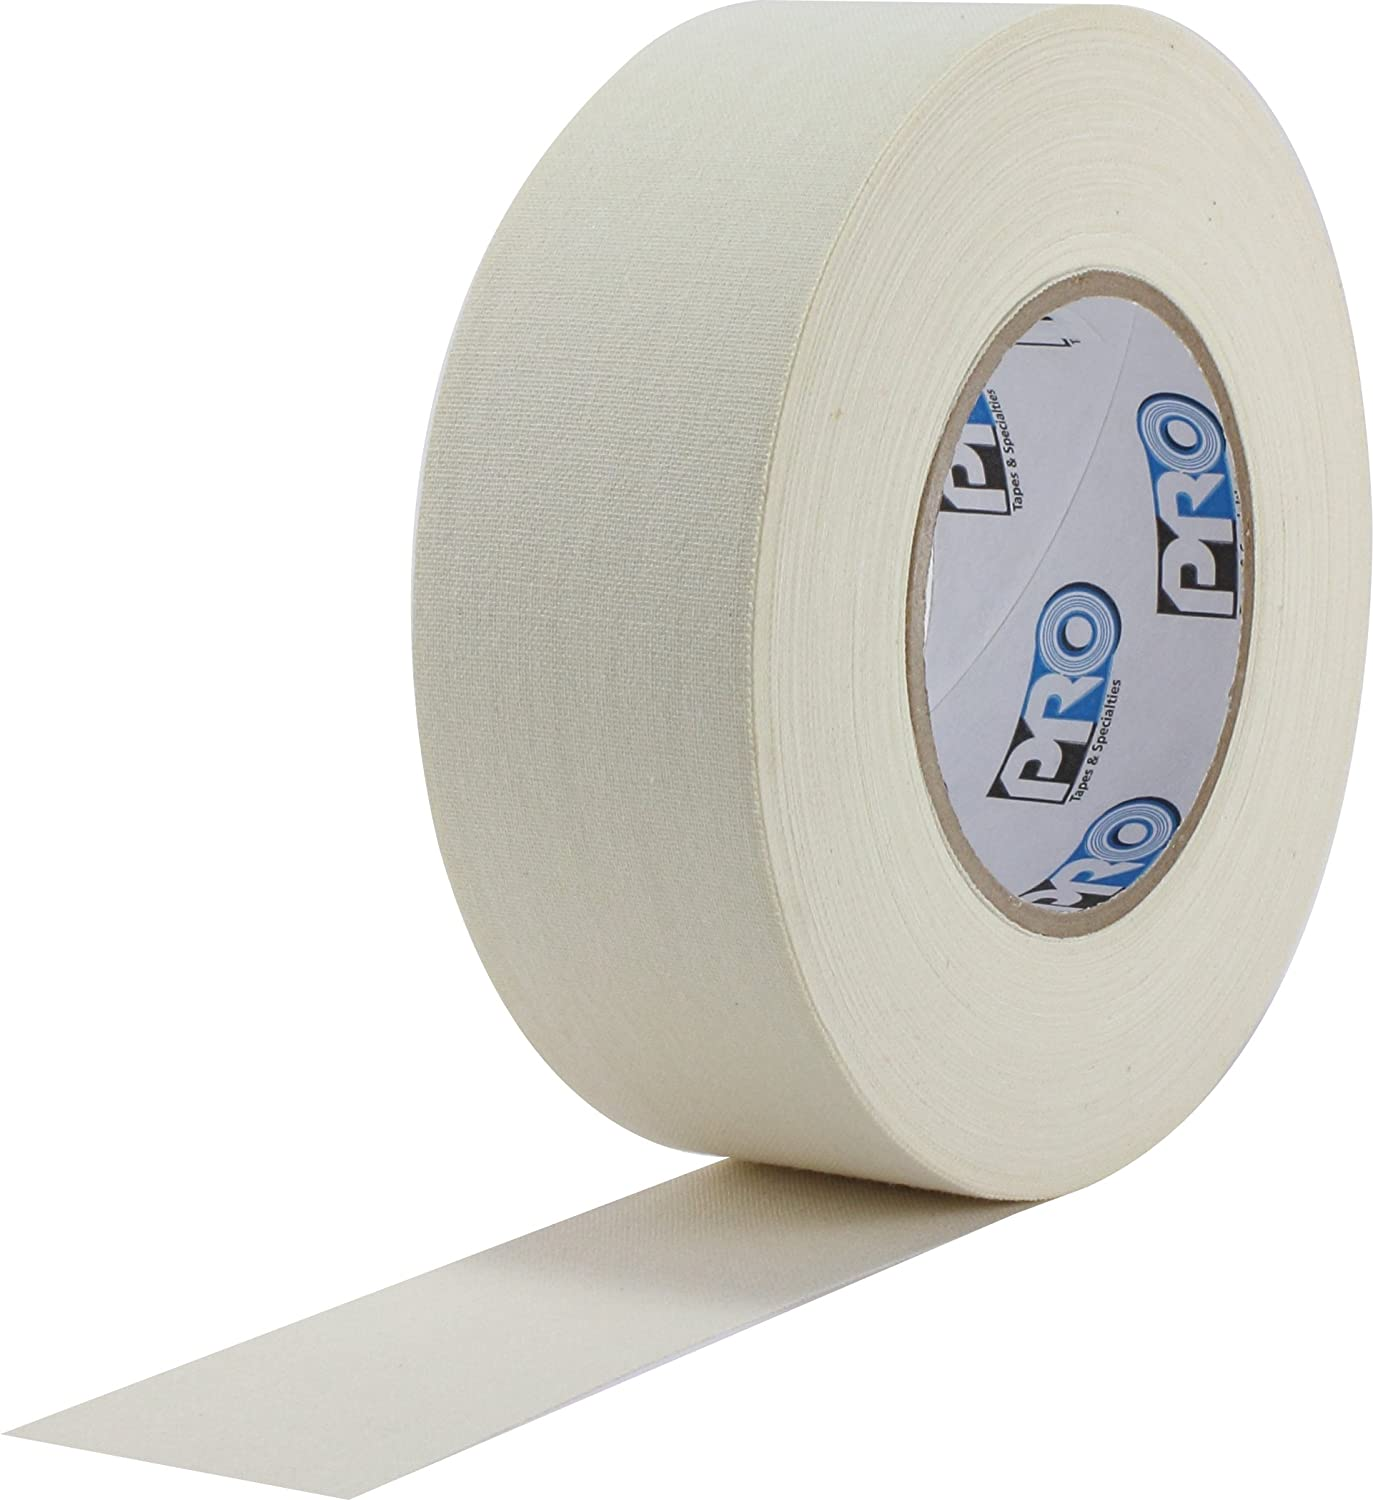 Protapes Pro 140 Pe Coated Cloth Pressure Sensitive Wire Harness Wiring Tape 42 Lb